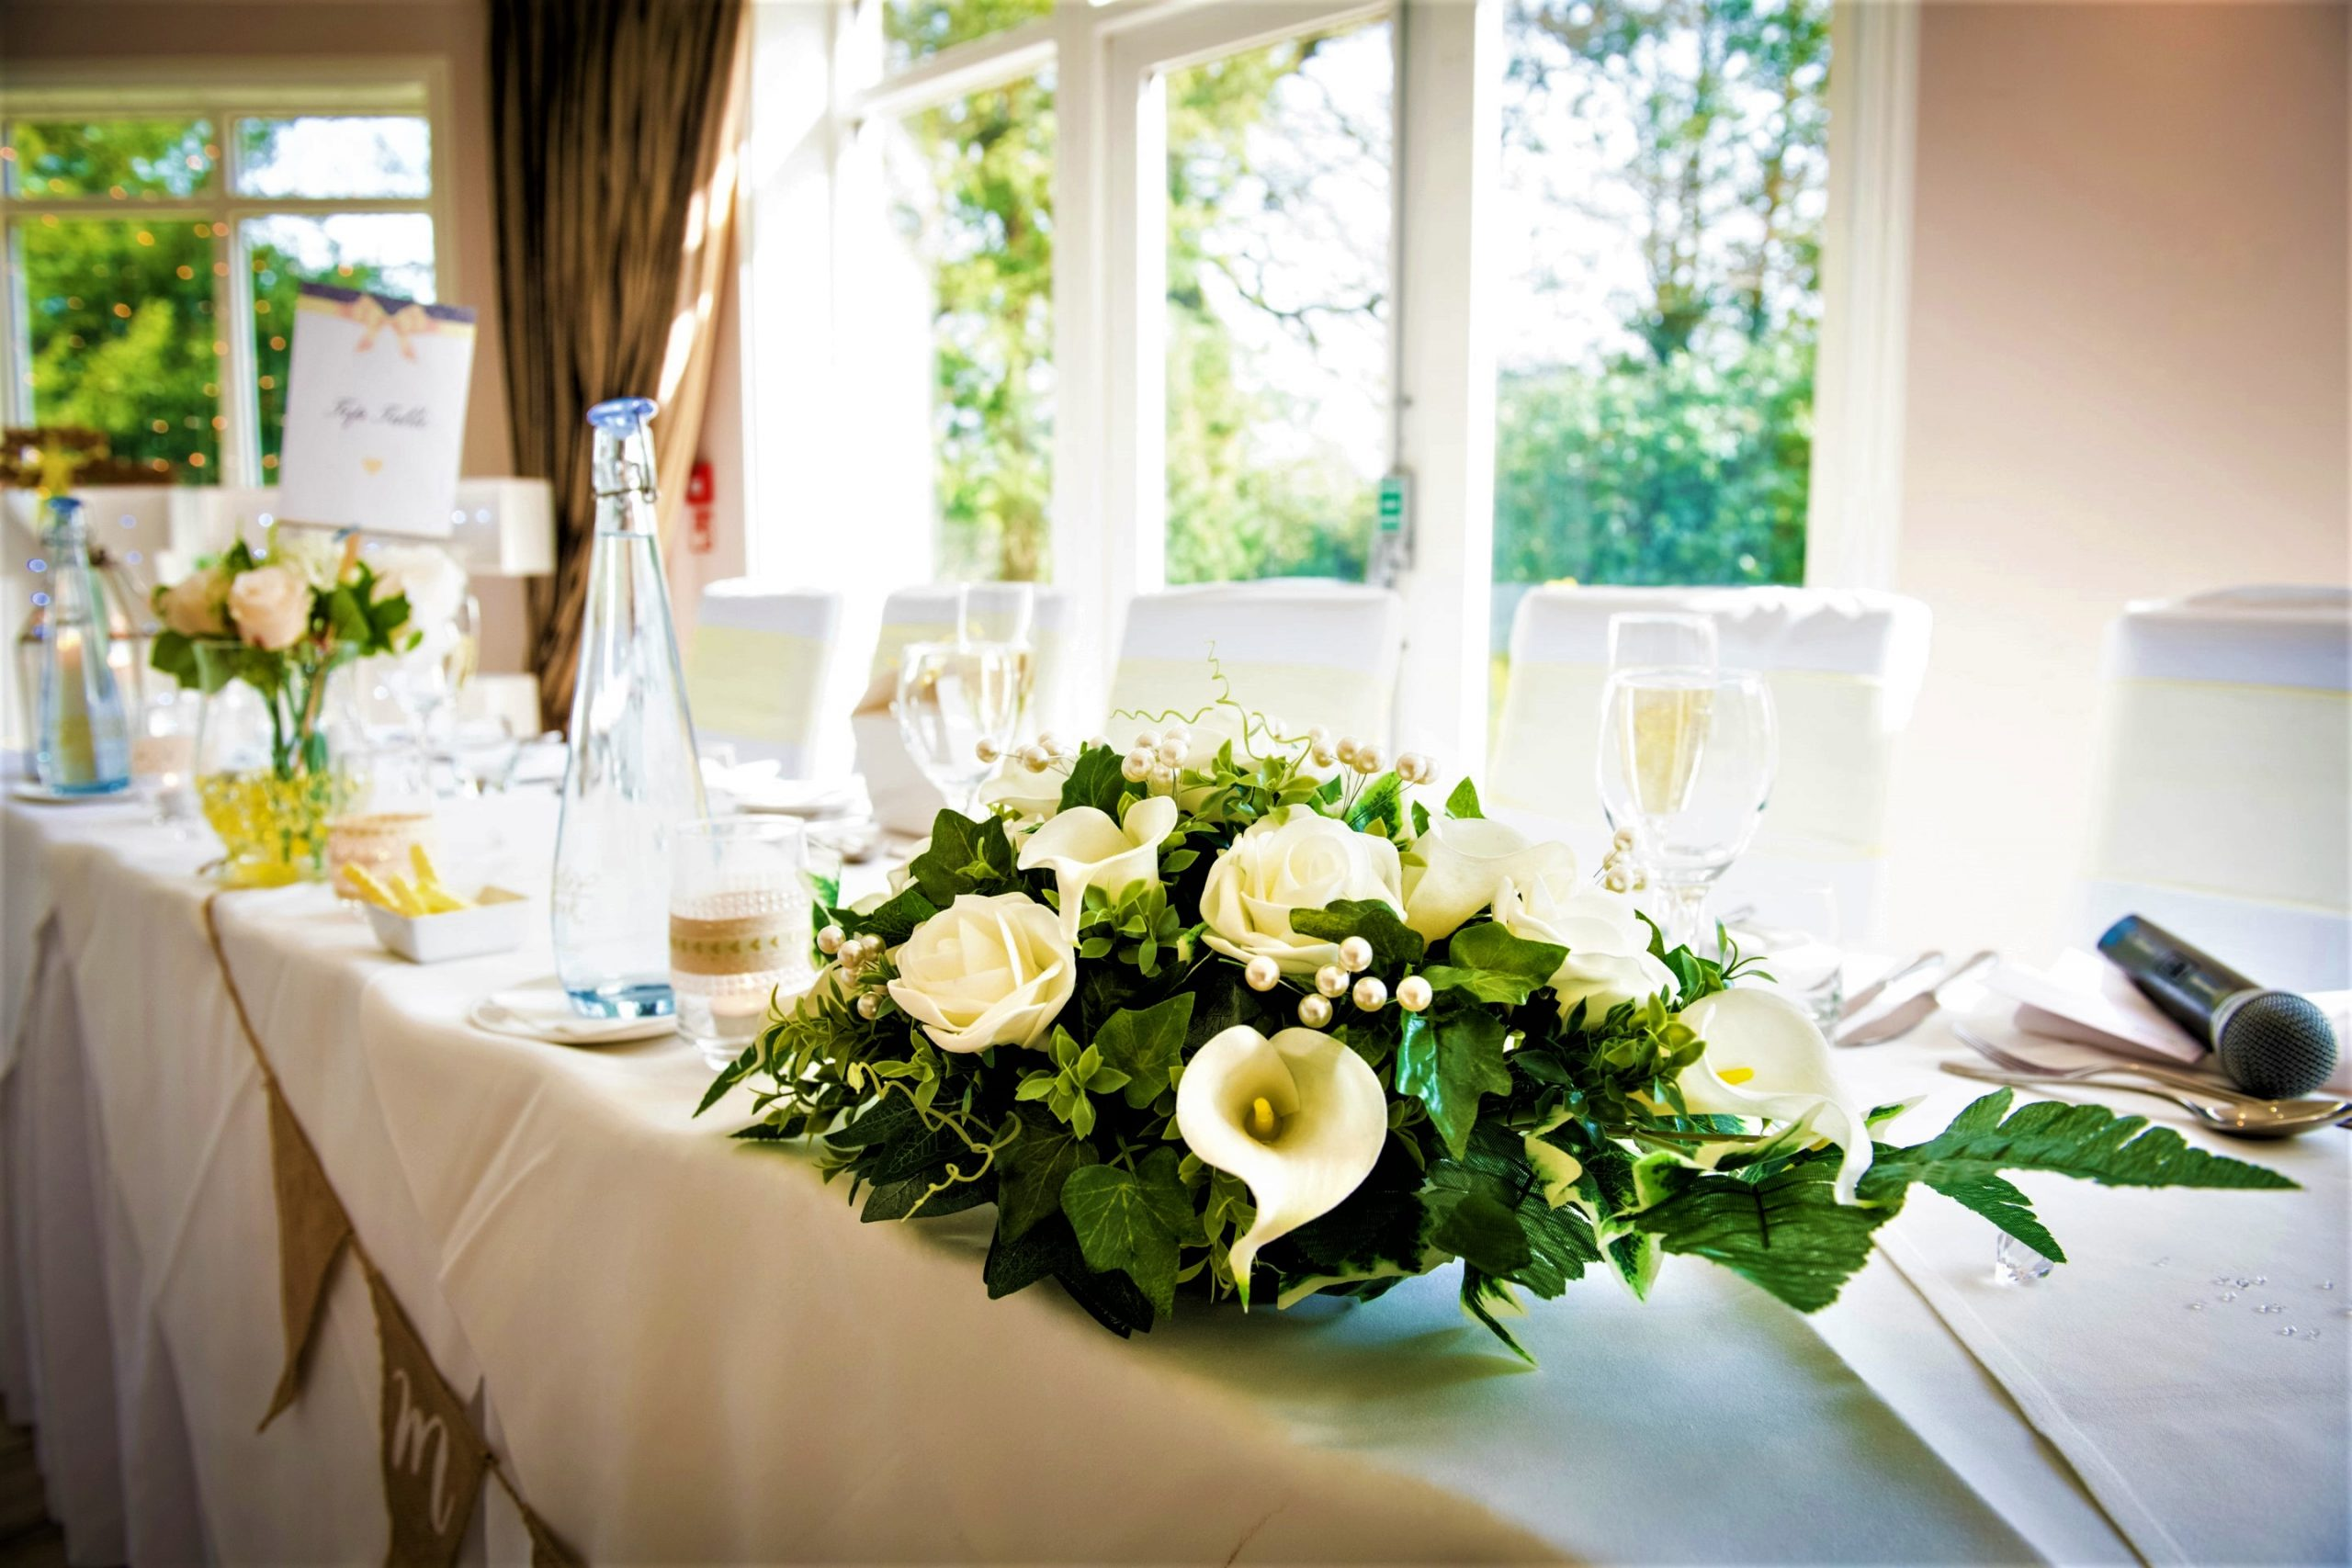 Top Table Decorations 2b